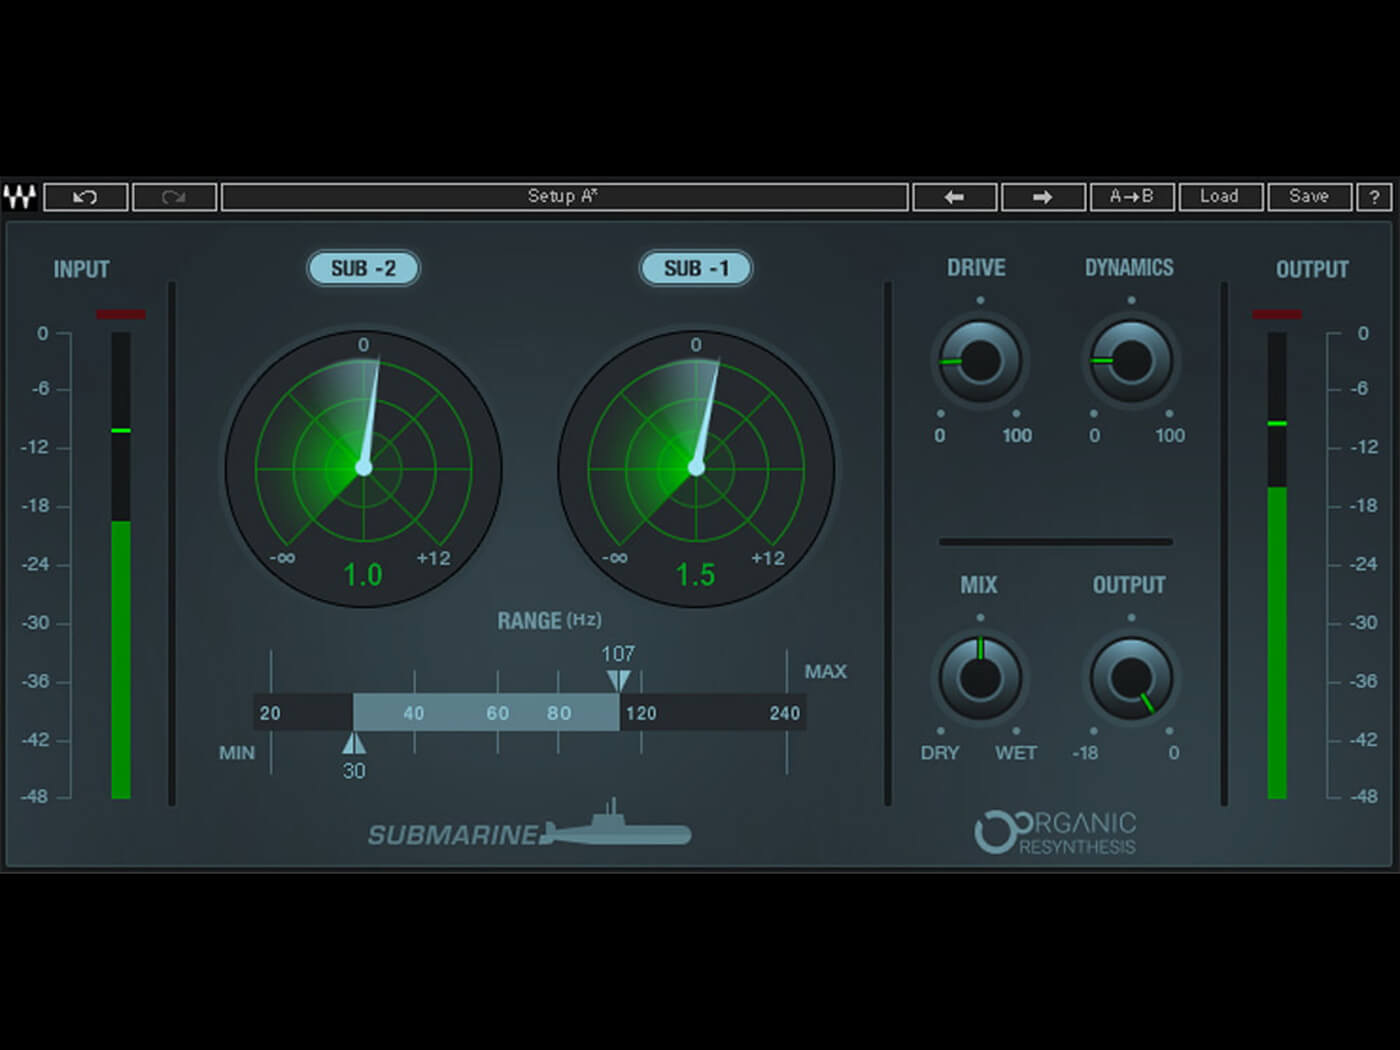 Waves Audio's Submarine plug-in generates deeper, cleaner sub bass